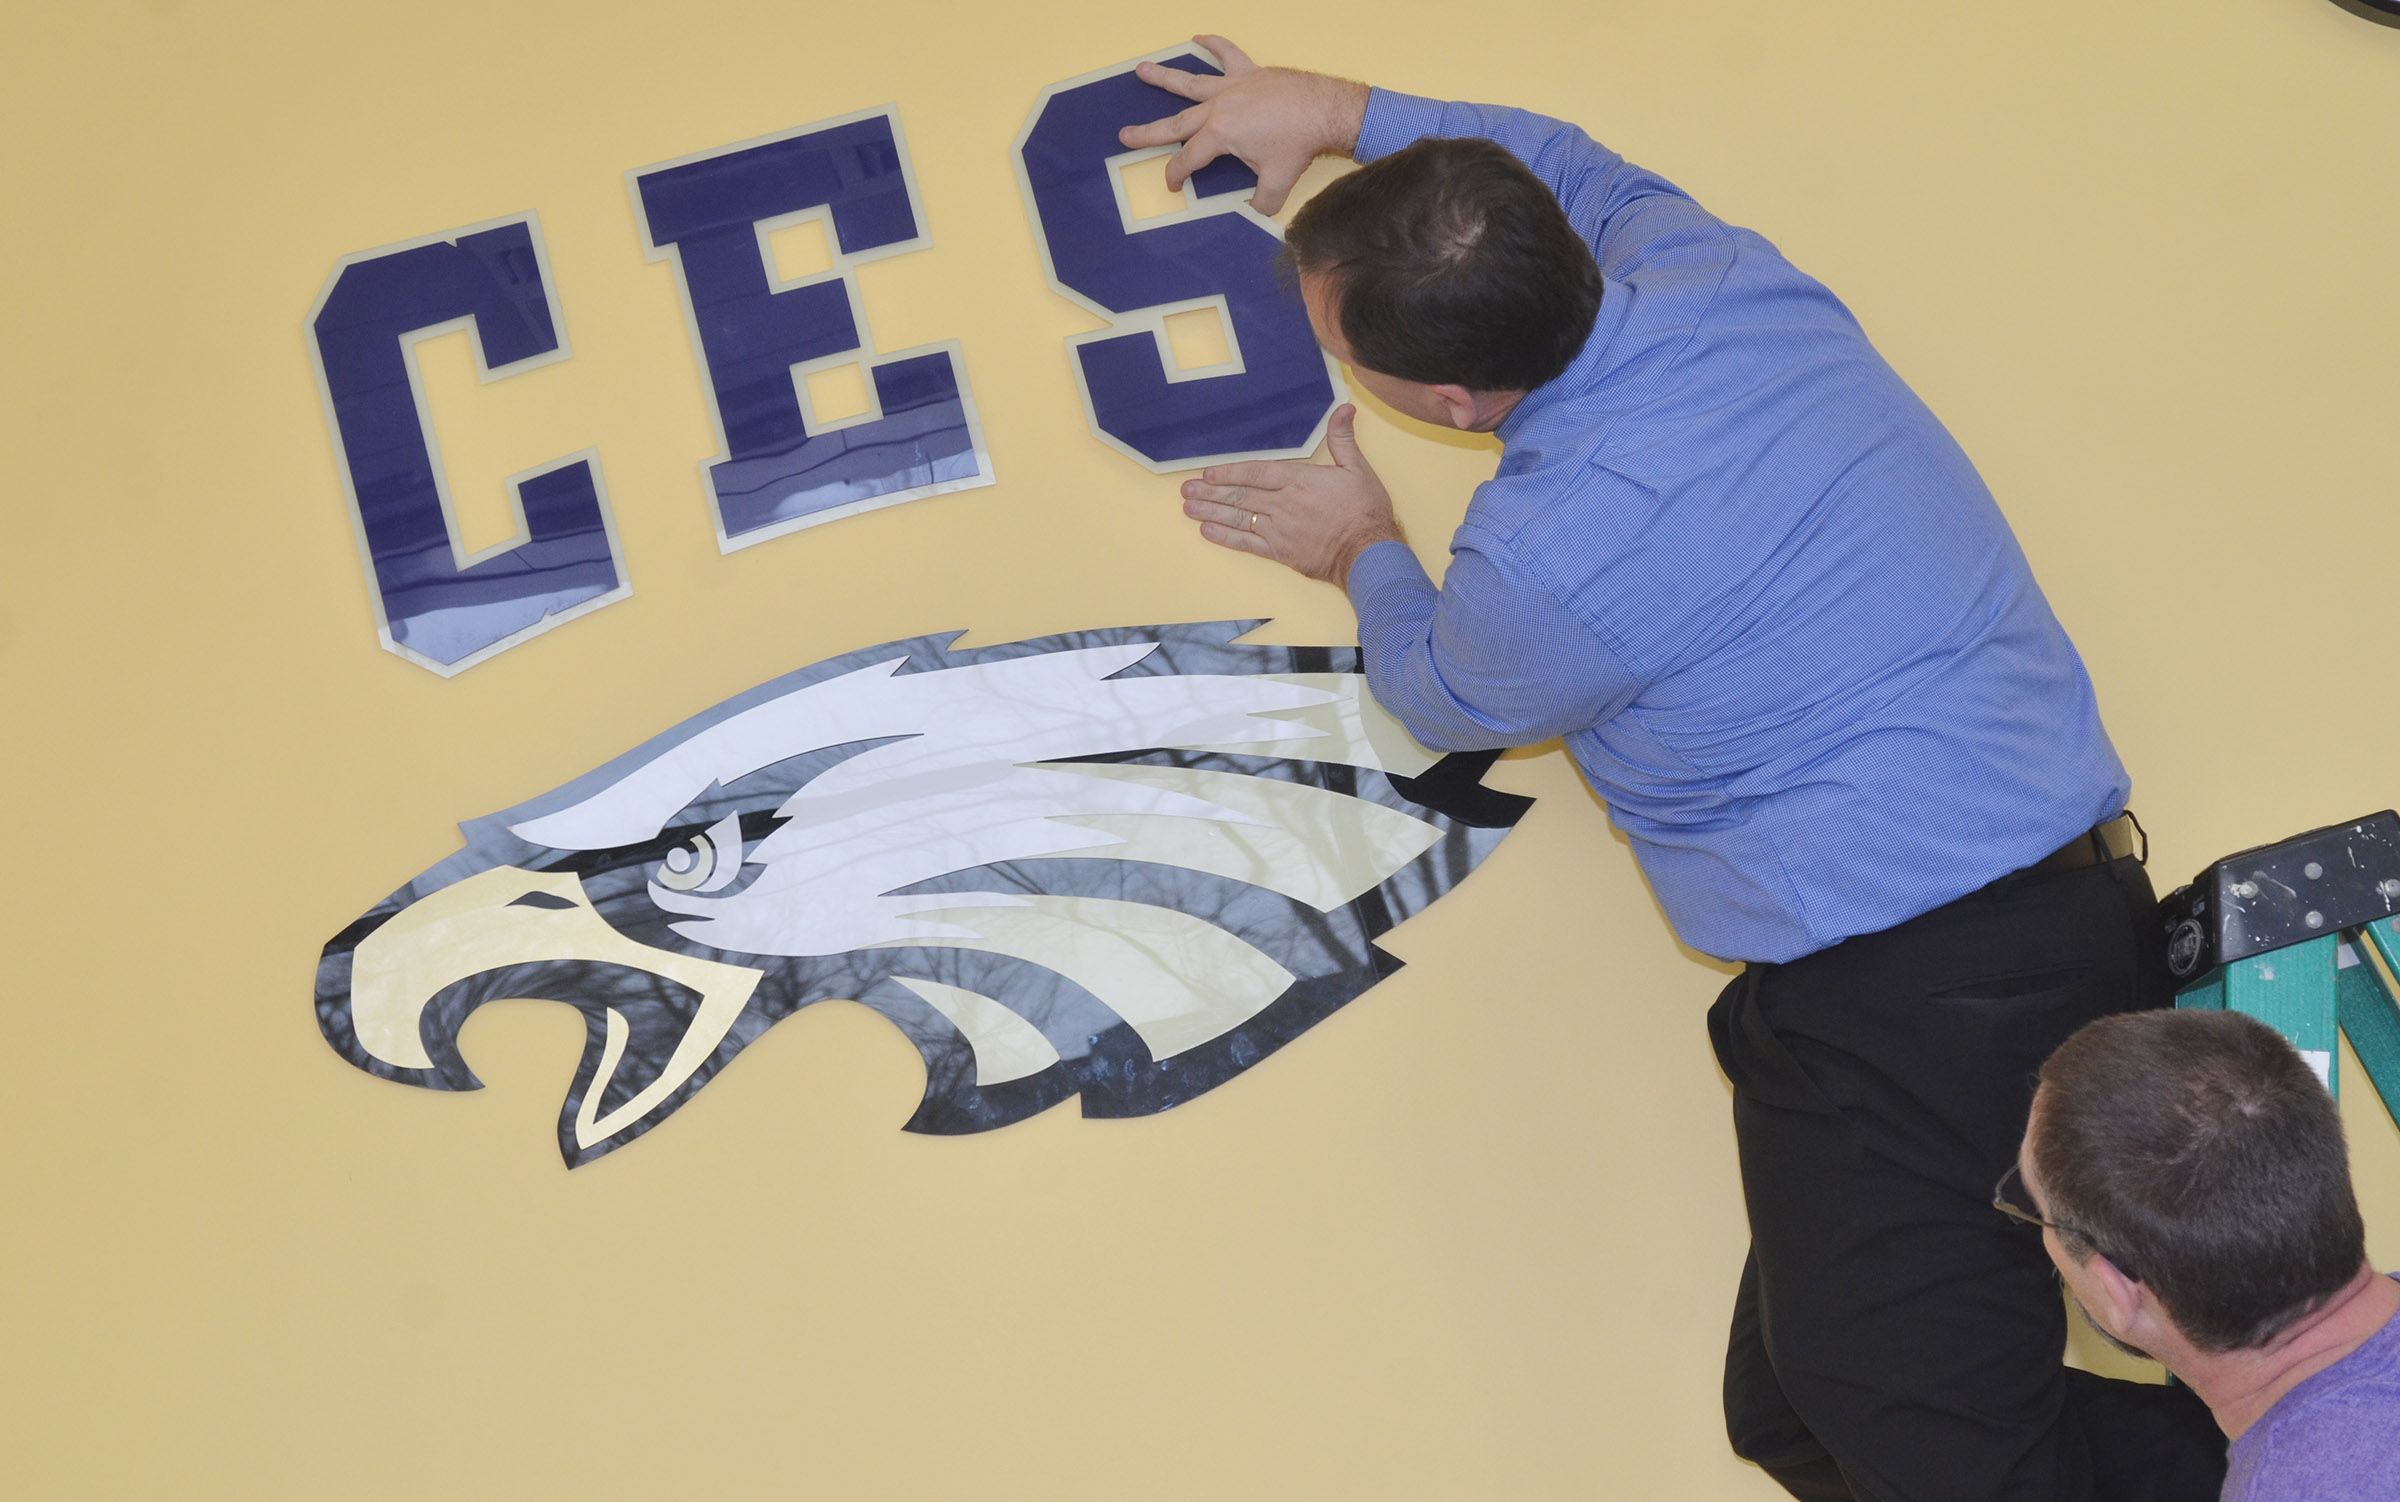 CES Principal Ricky Hunt, at left, and maintenance worker Randy Bricken Jr. install the CES letters and eagle.